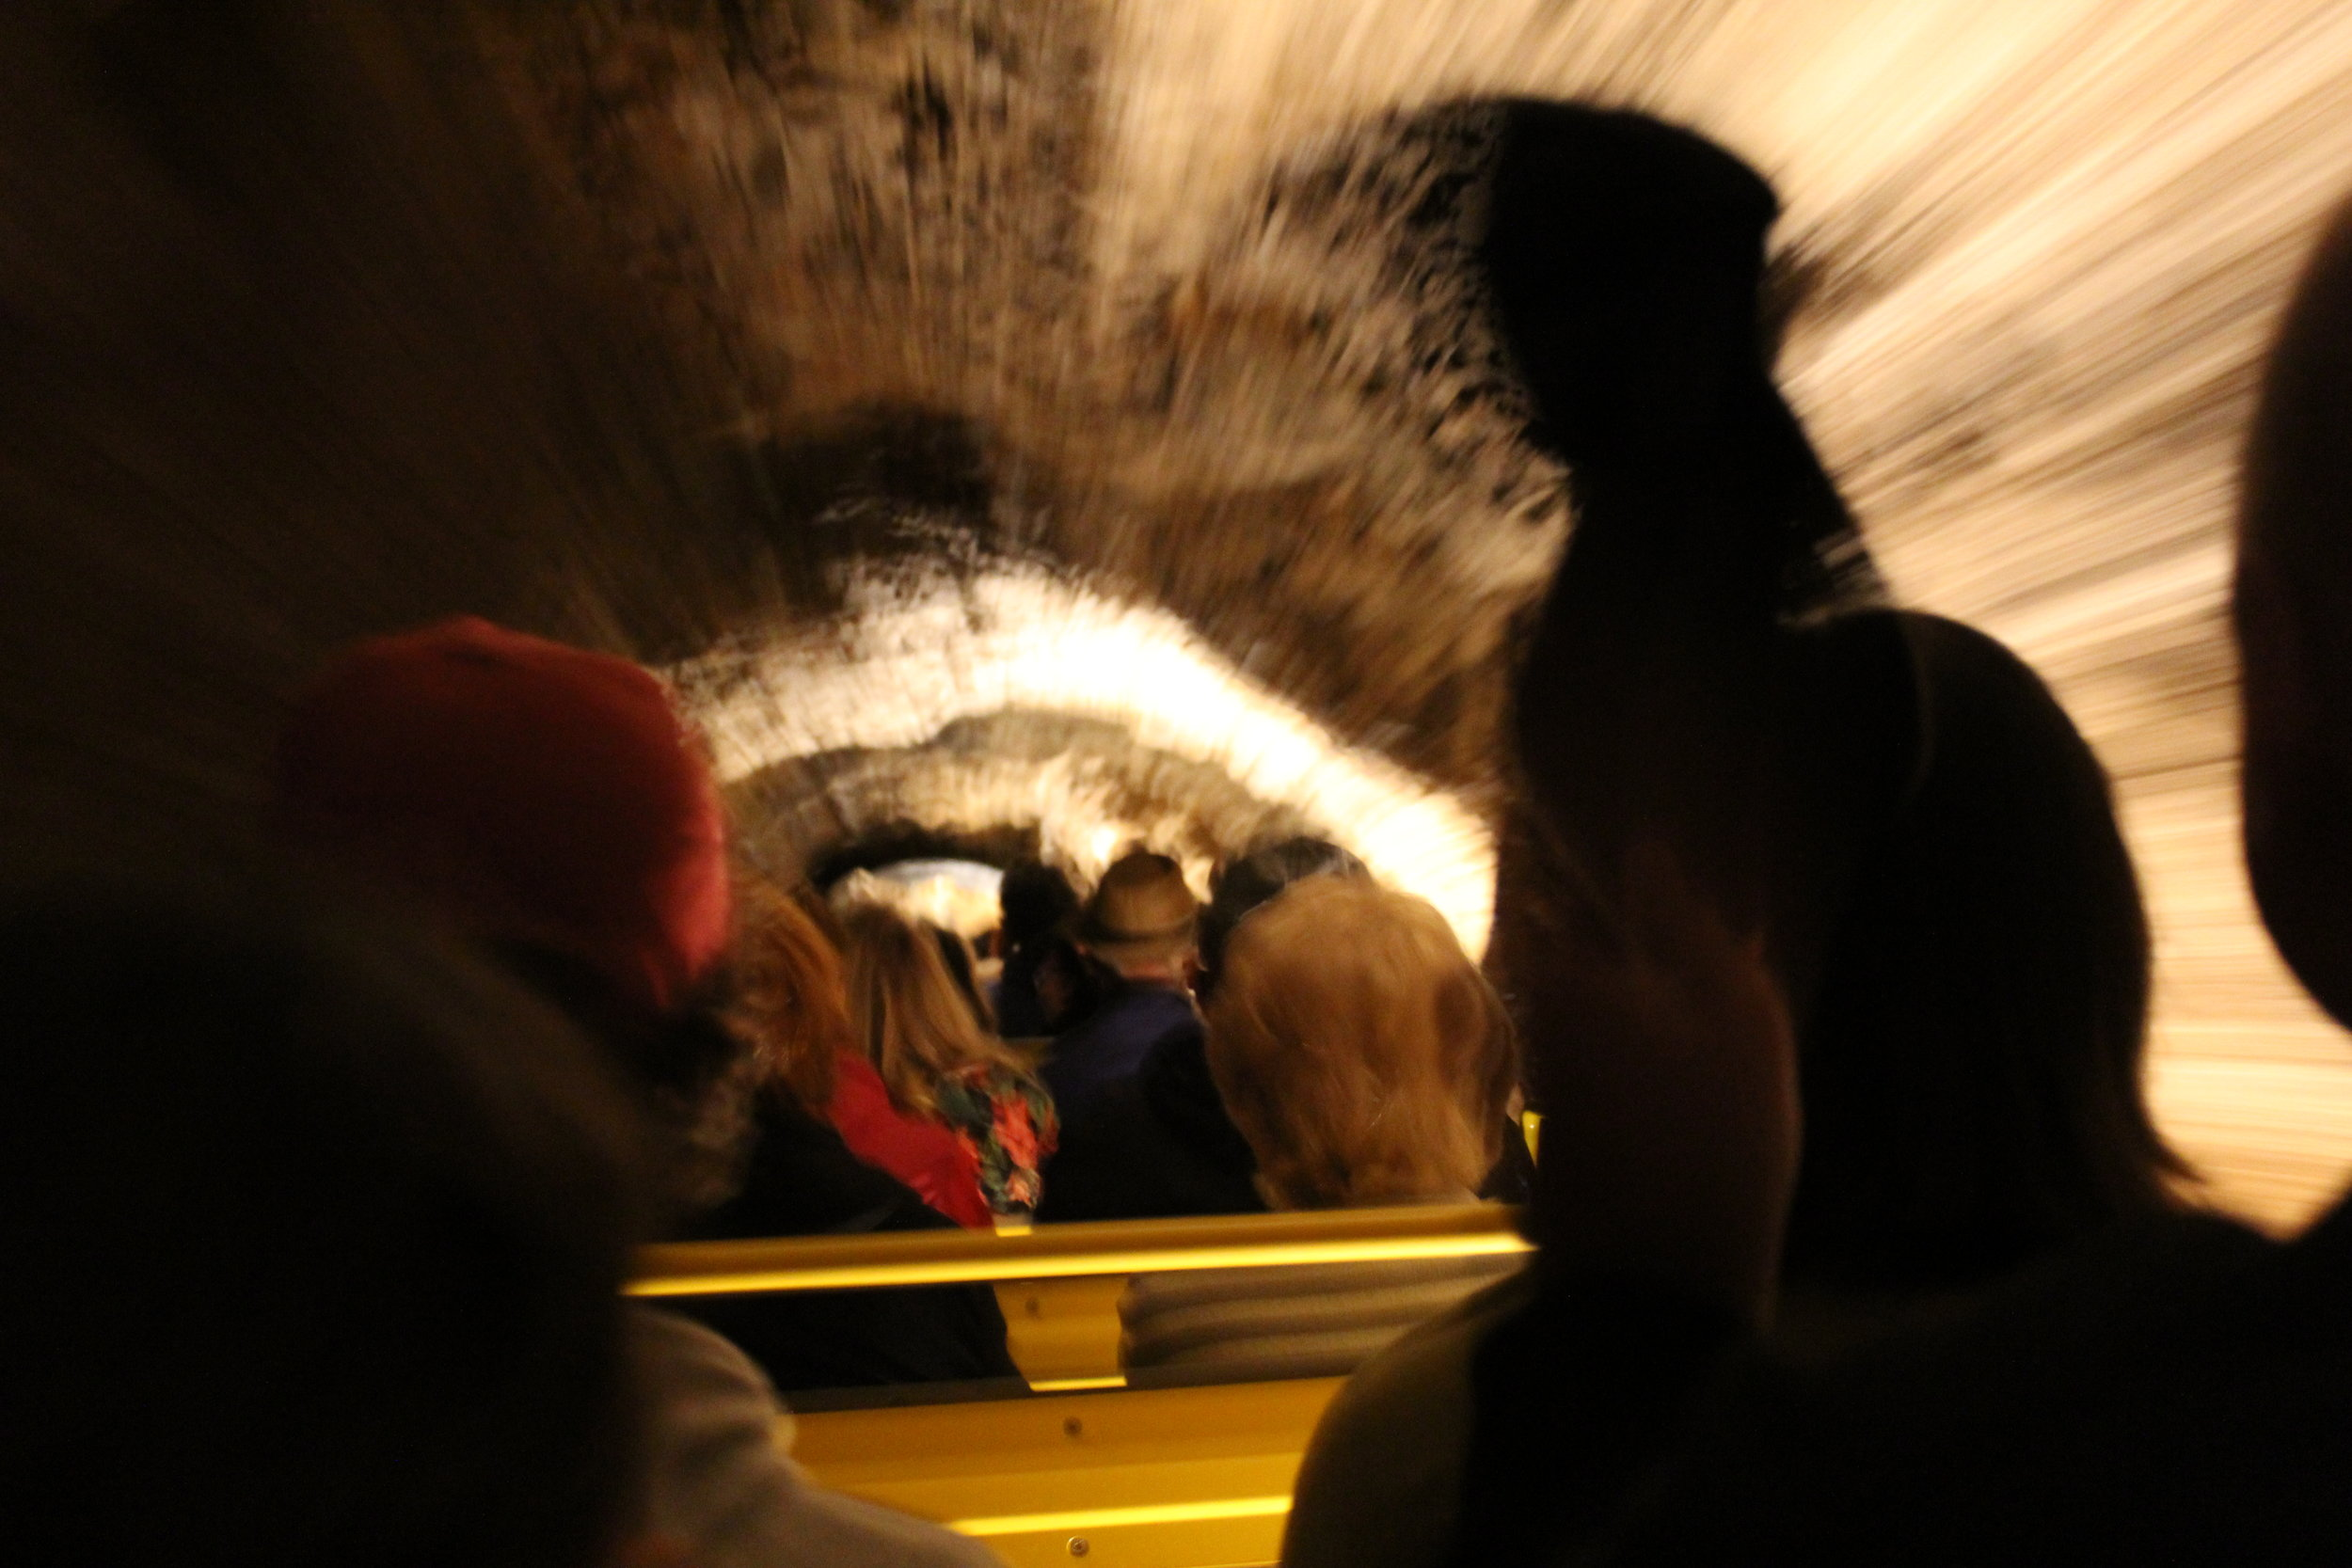 Travelling down into the cave by train